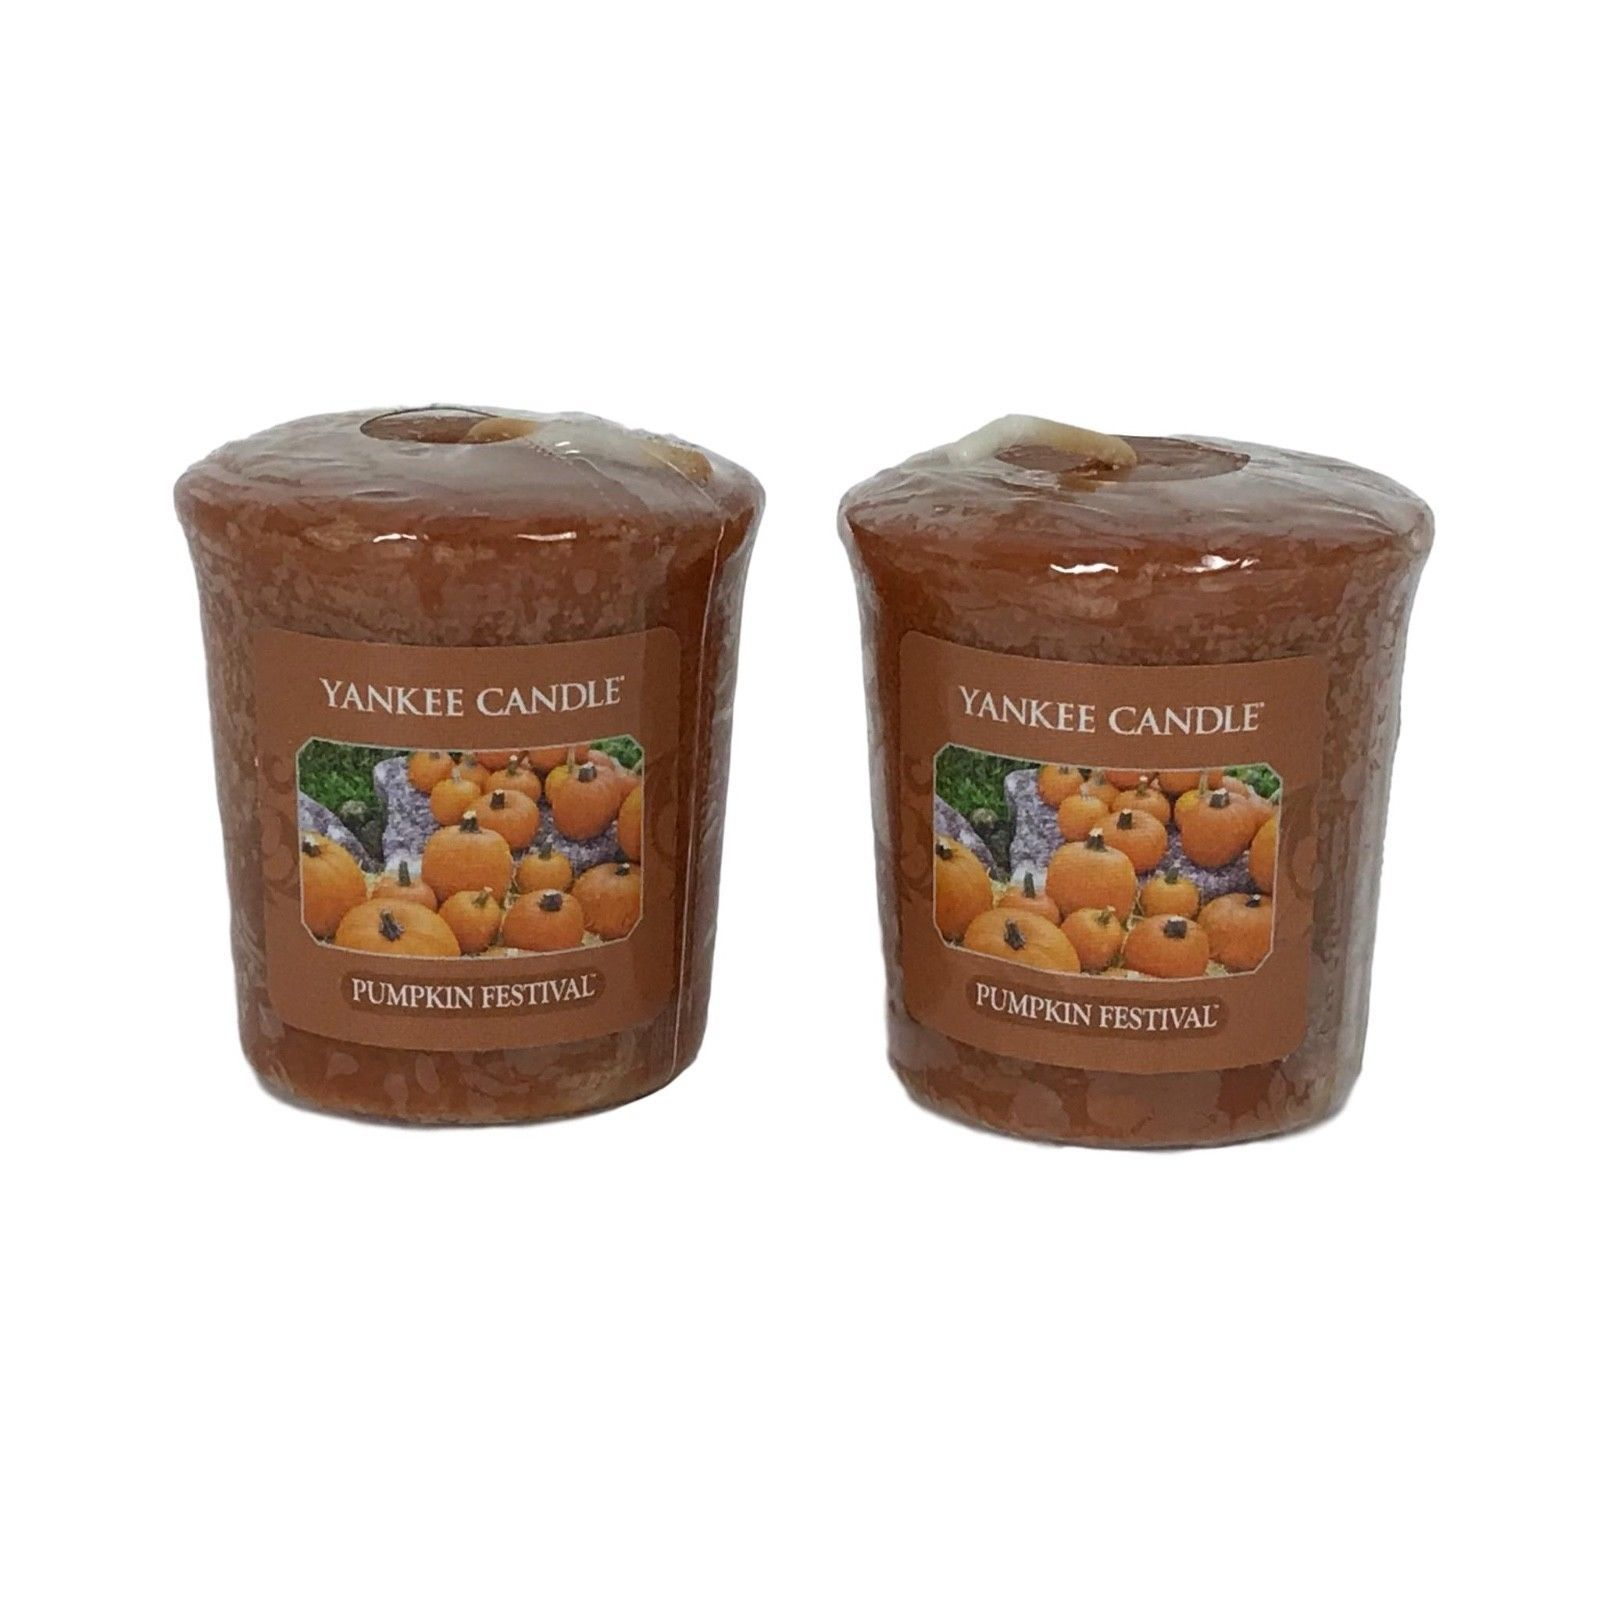 Yankee Candle Pumpkin Festival Lot of 2 Votives Wrapped Fall Scent